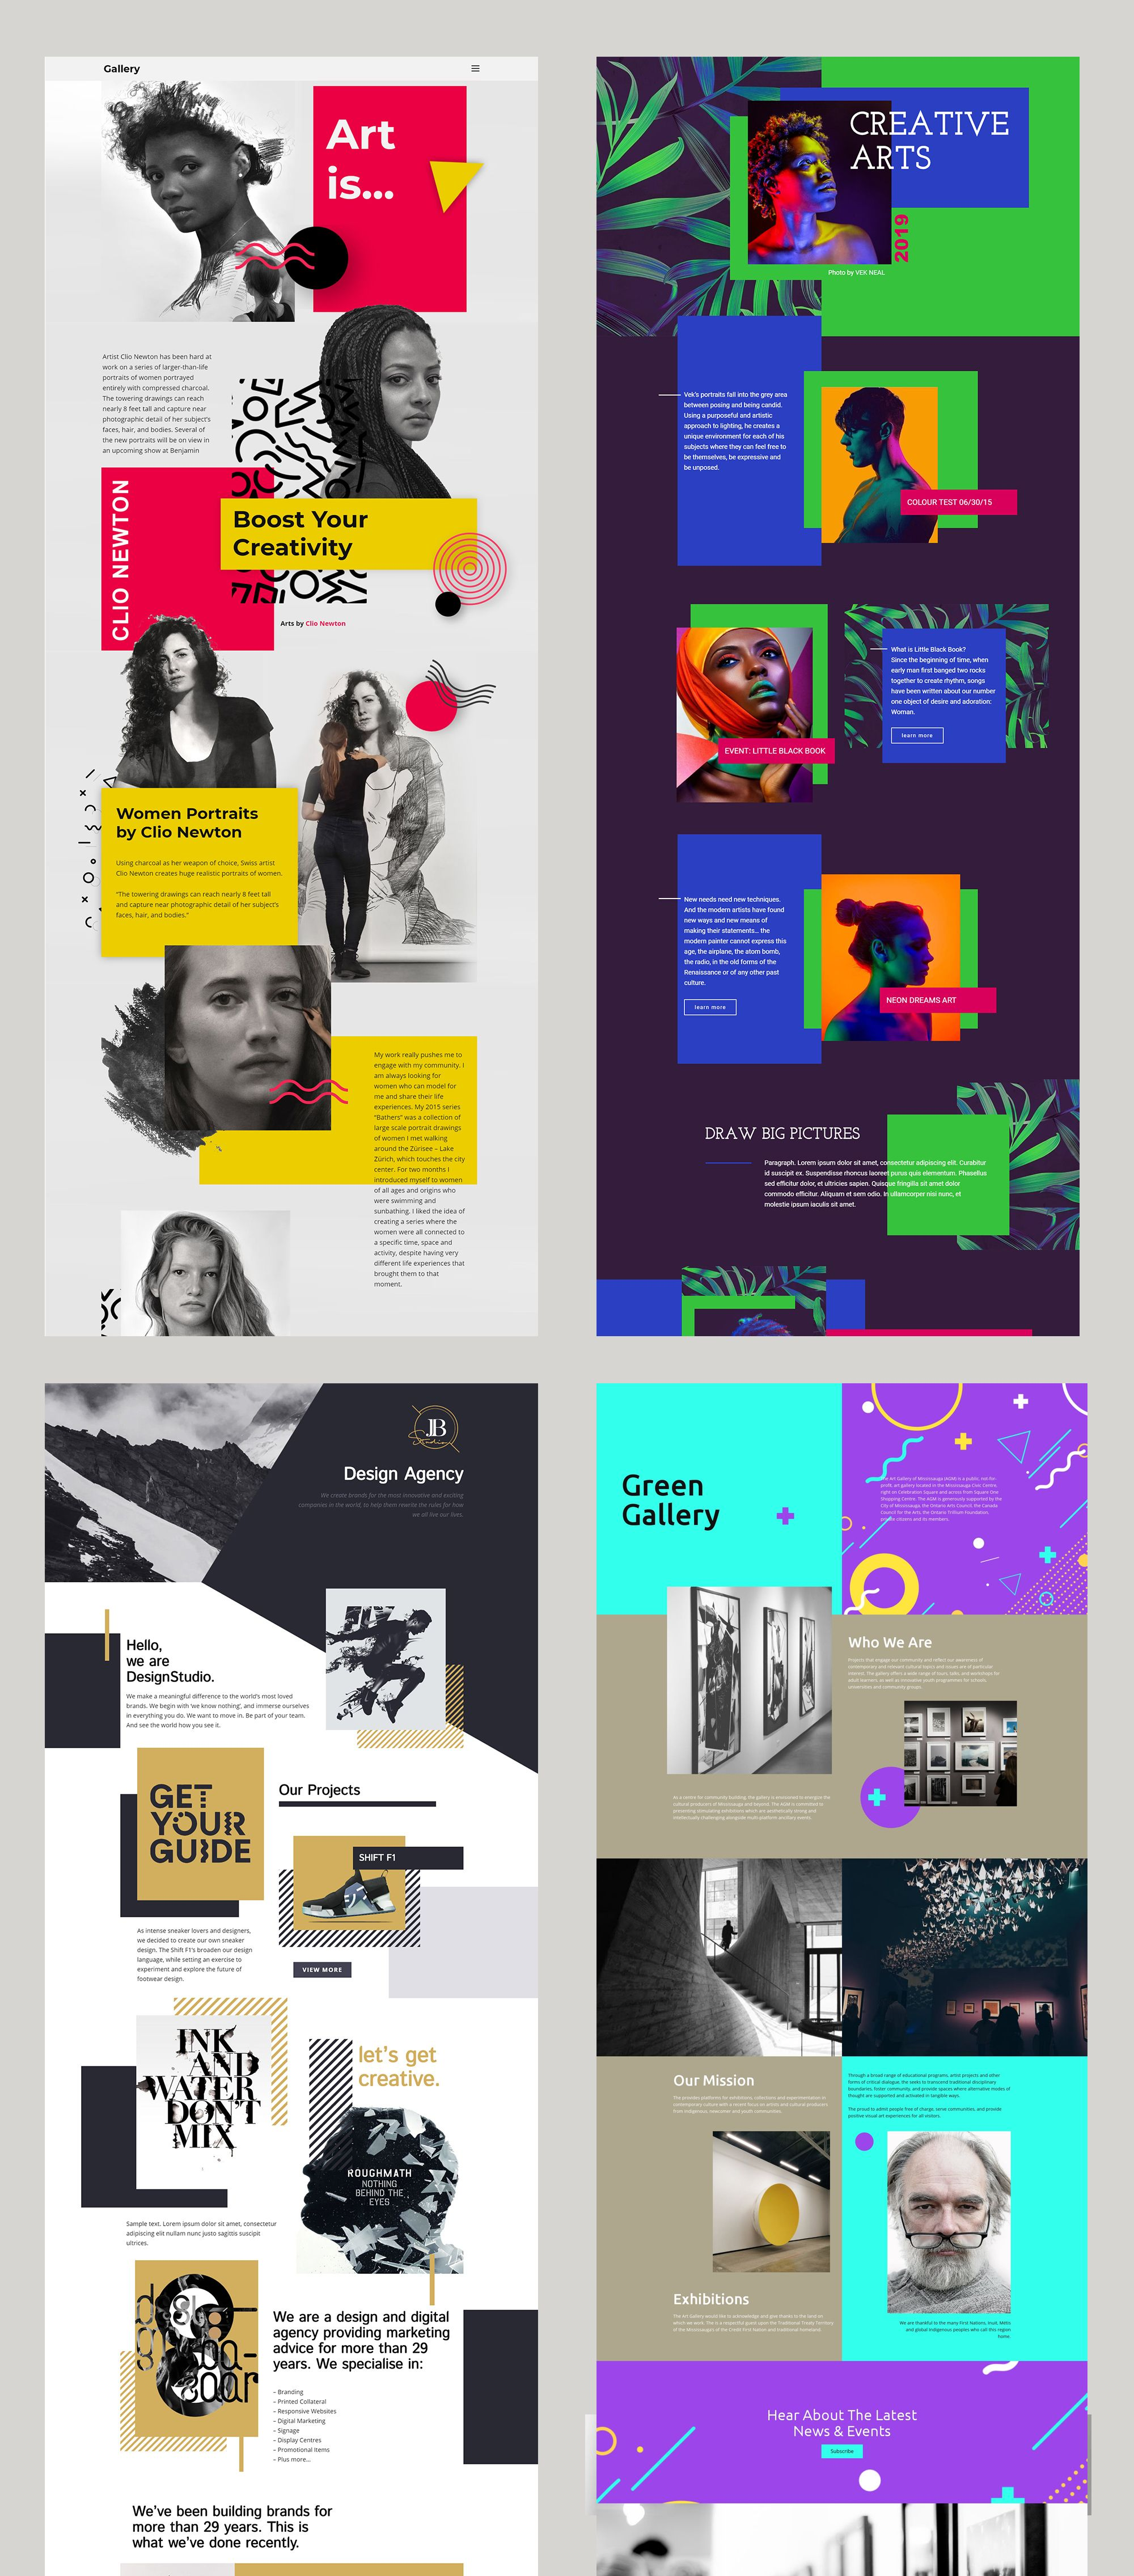 Free Templates By Nicepage Builder Web Design Agency Web Design Tips Professional Web Design